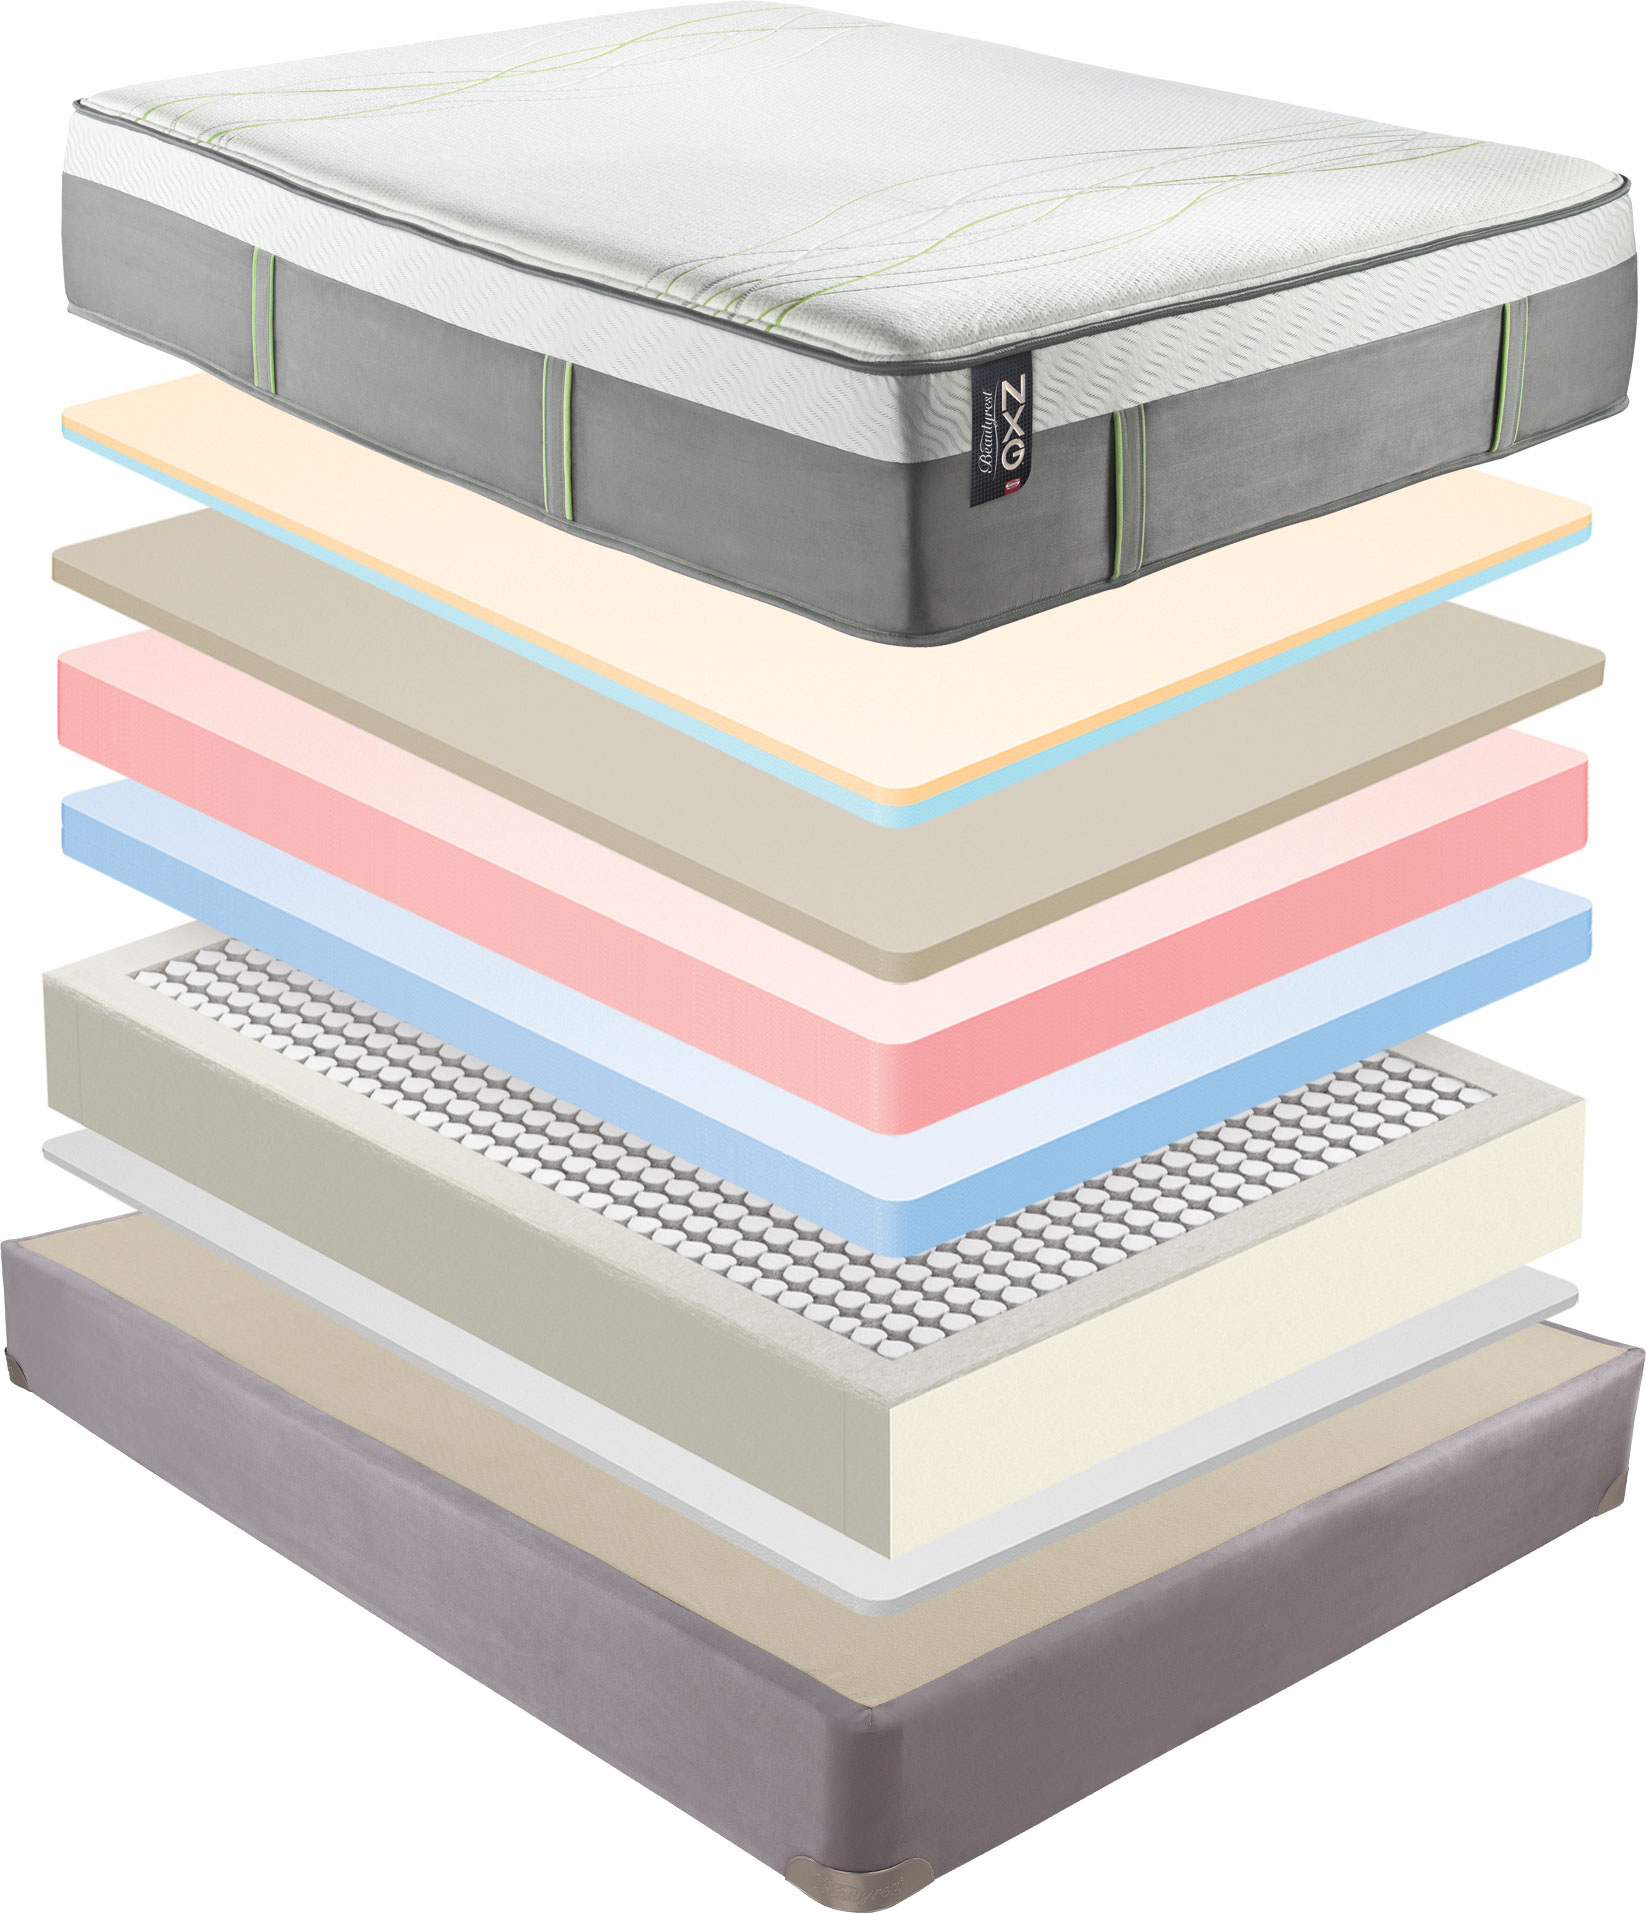 Simmons Beautyrest NXG 600 Mattress